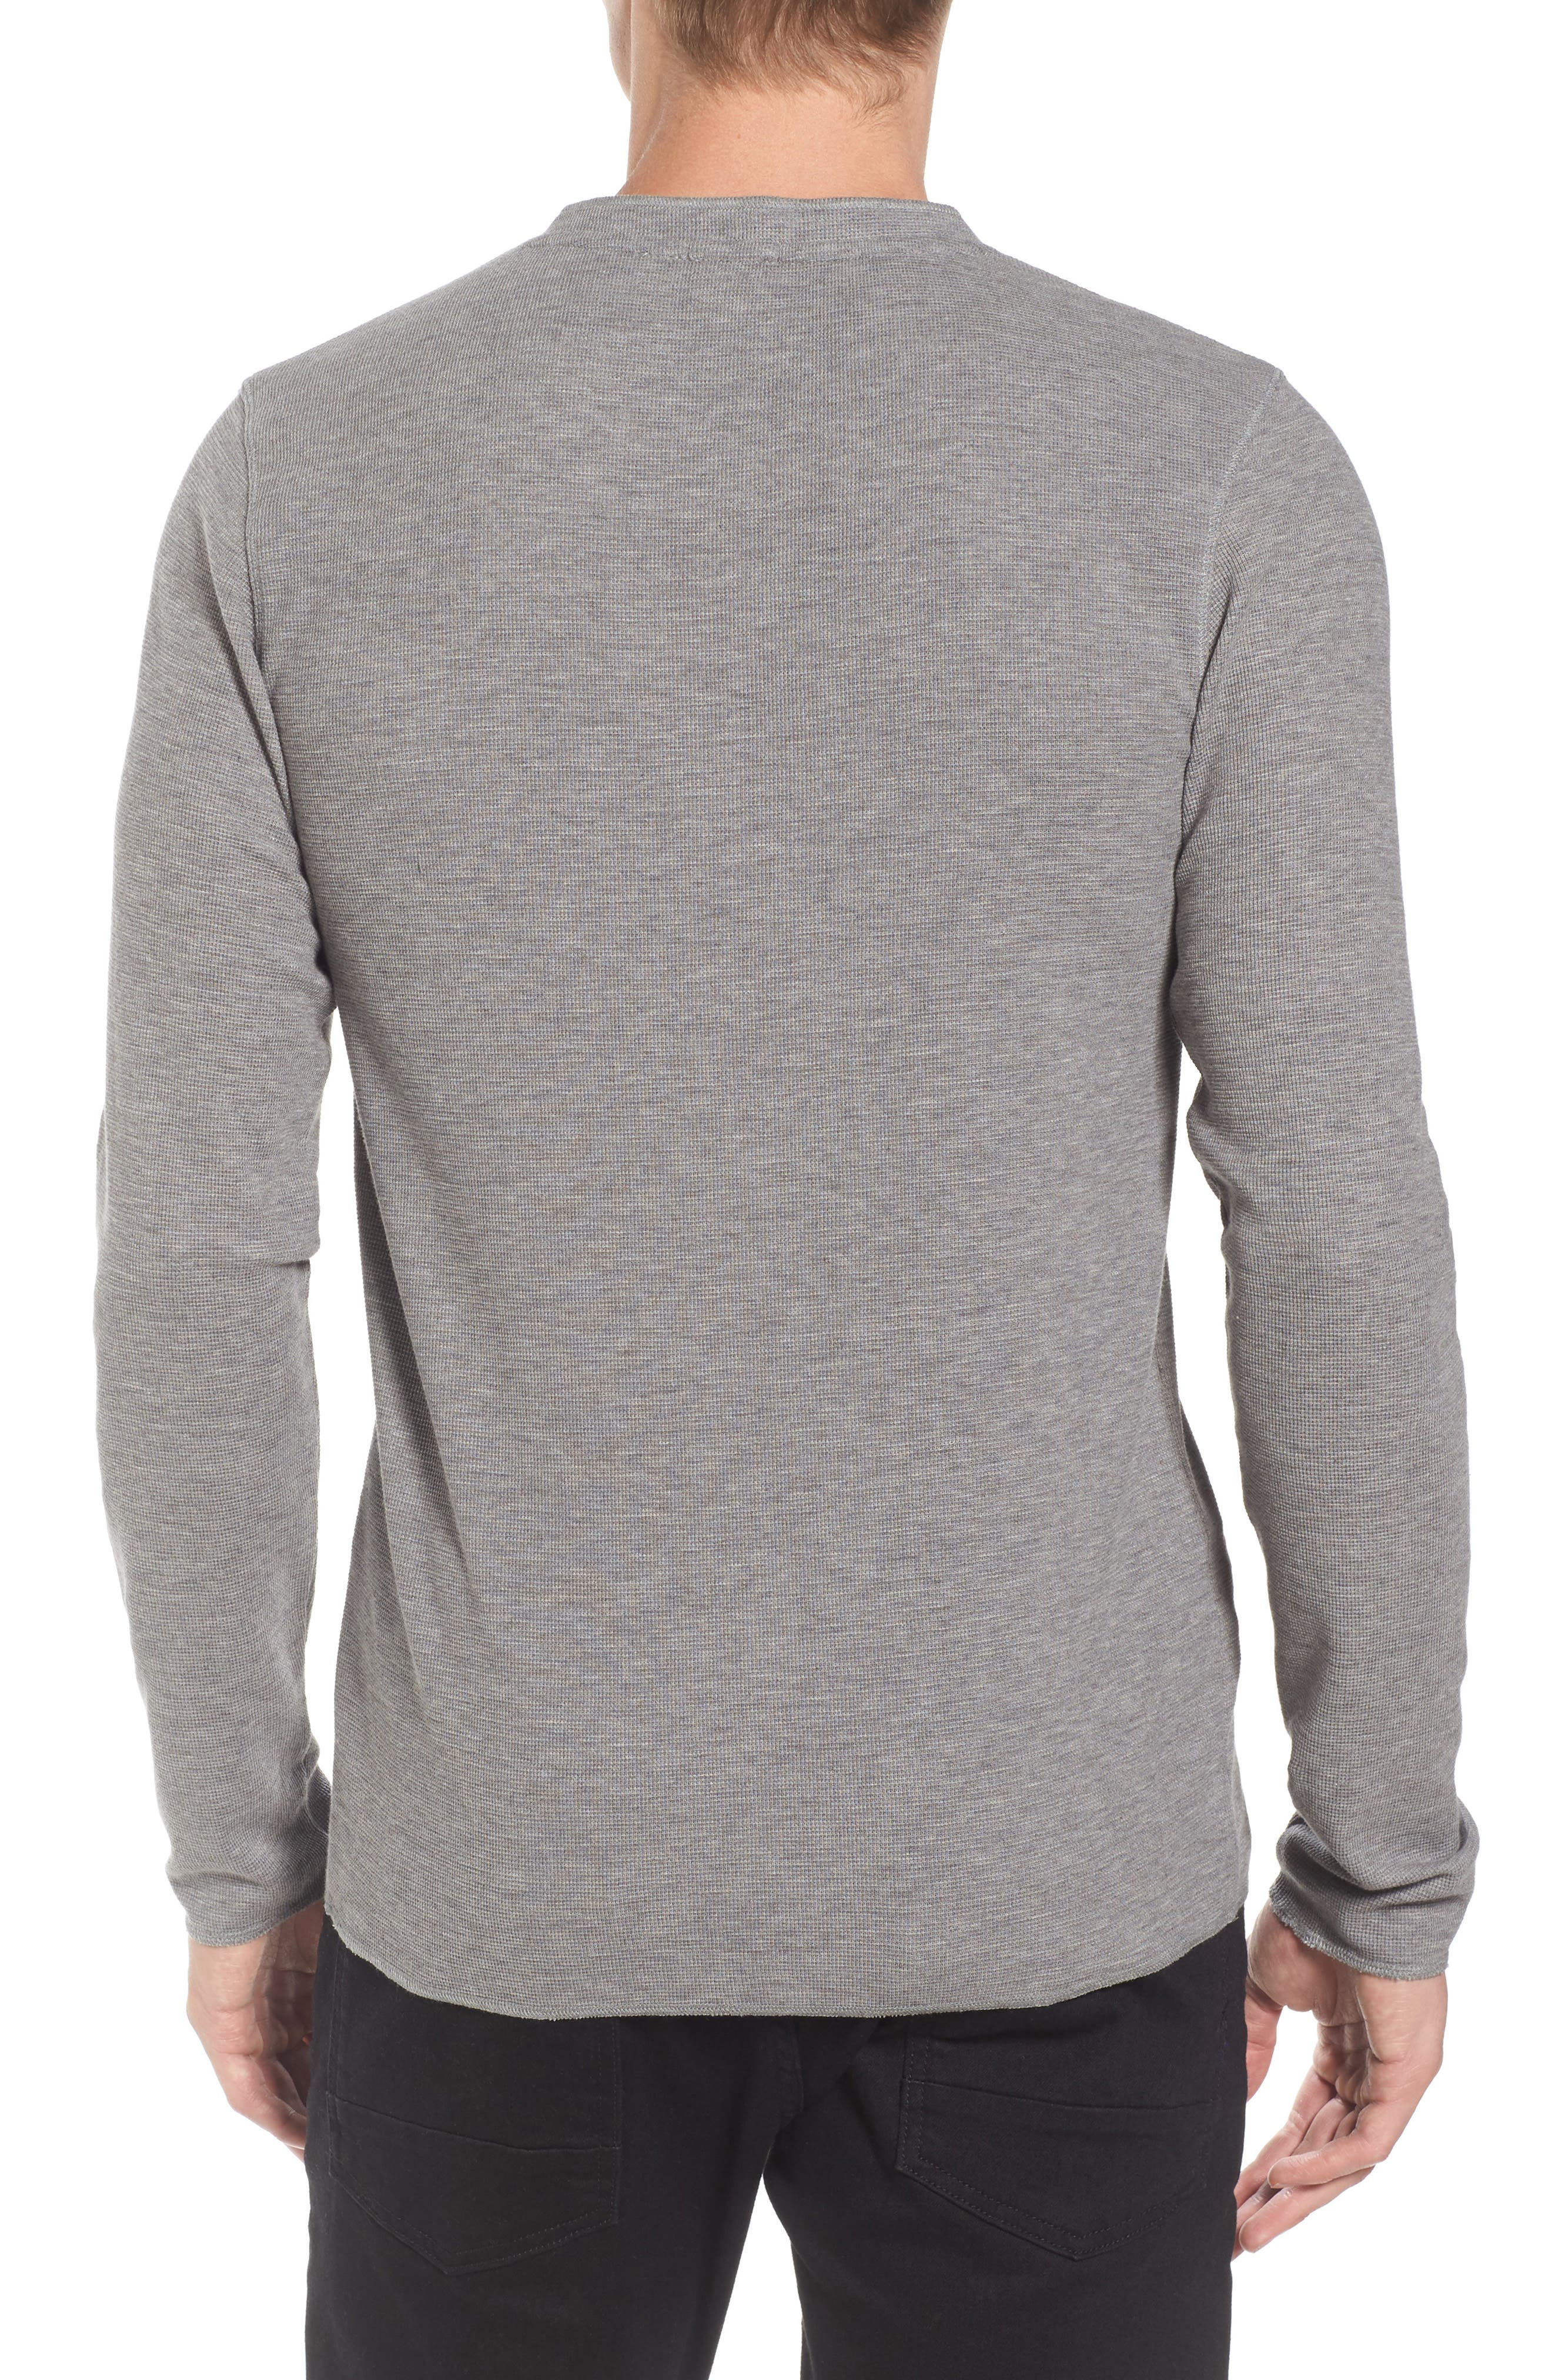 Topsider Thermal Henley,                             Alternate thumbnail 2, color,                             051